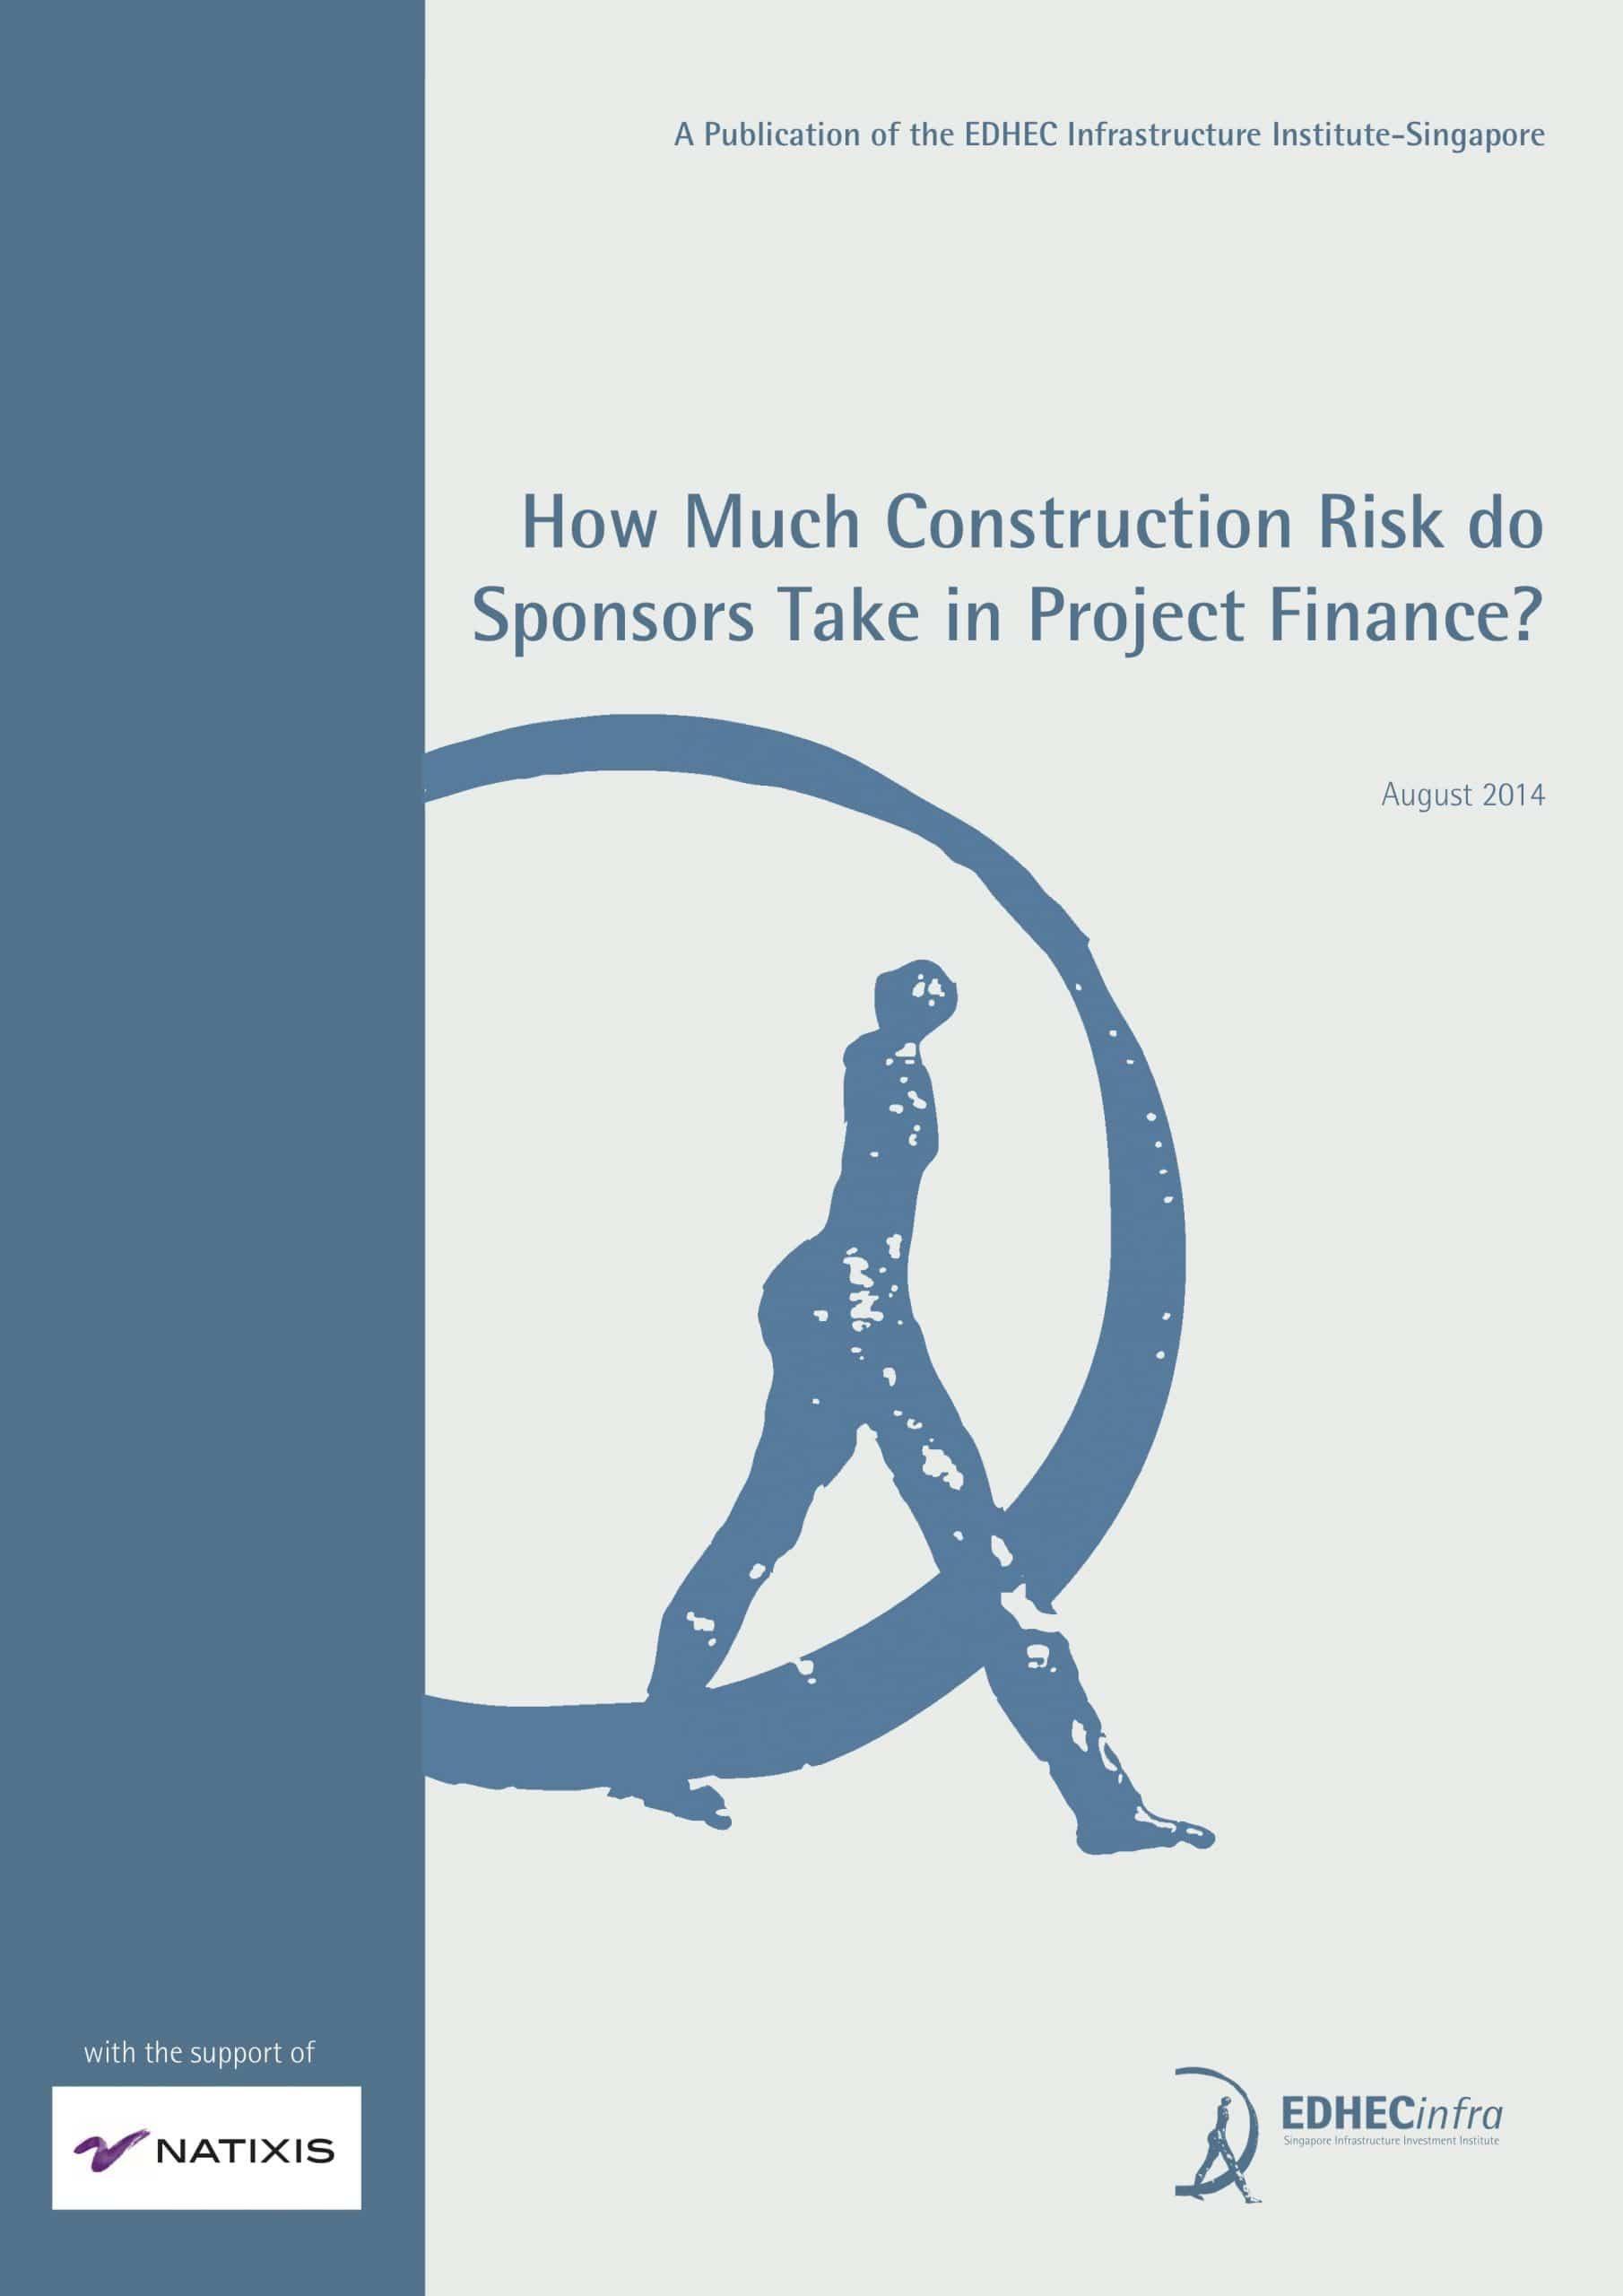 How much construction risk do sponsors take in project finance?